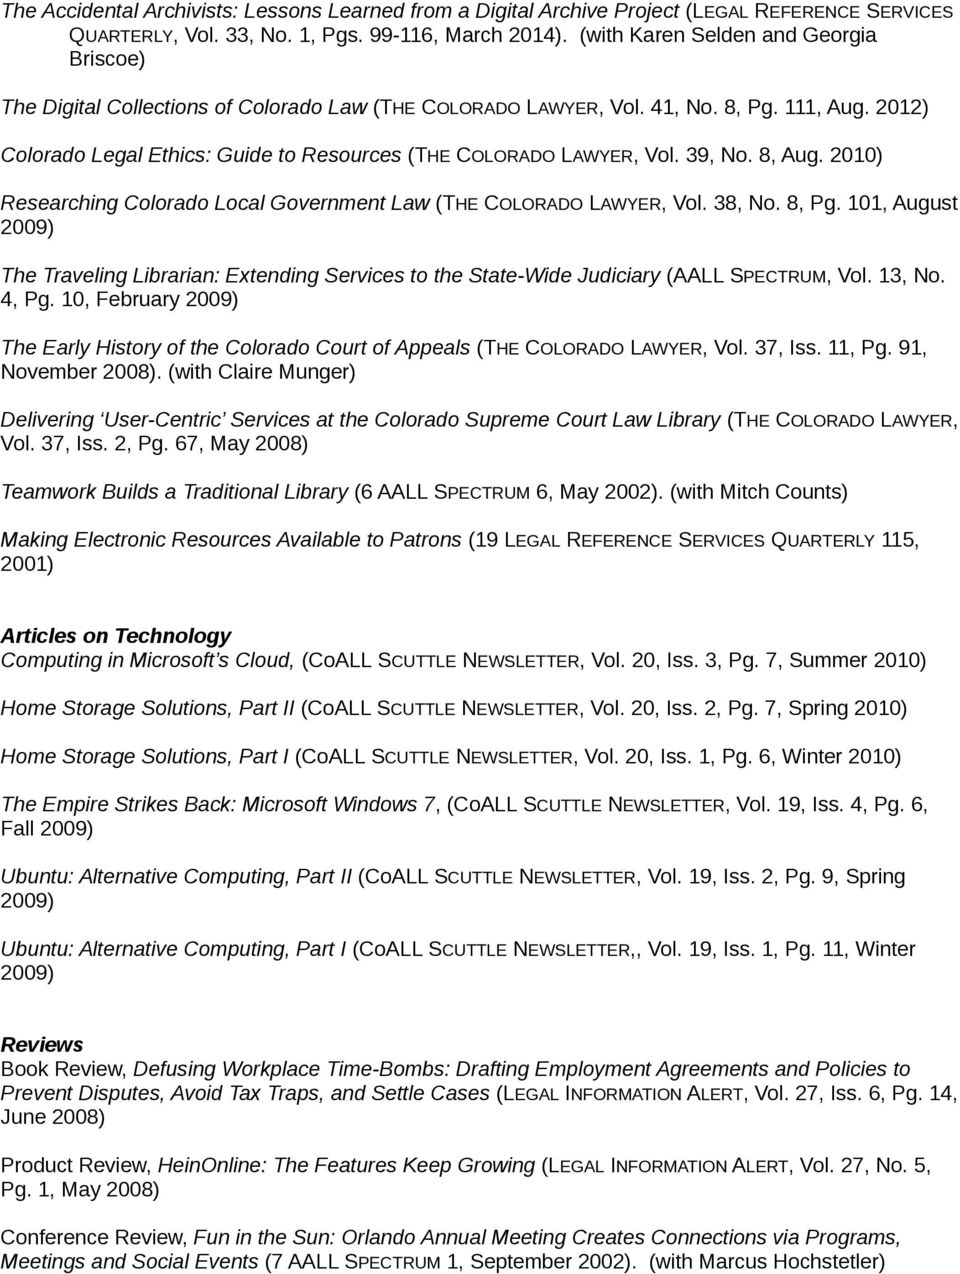 2012) Colorado Legal Ethics: Guide to Resources (THE COLORADO LAWYER, Vol. 39, No. 8, Aug. 2010) Researching Colorado Local Government Law (THE COLORADO LAWYER, Vol. 38, No. 8, Pg.